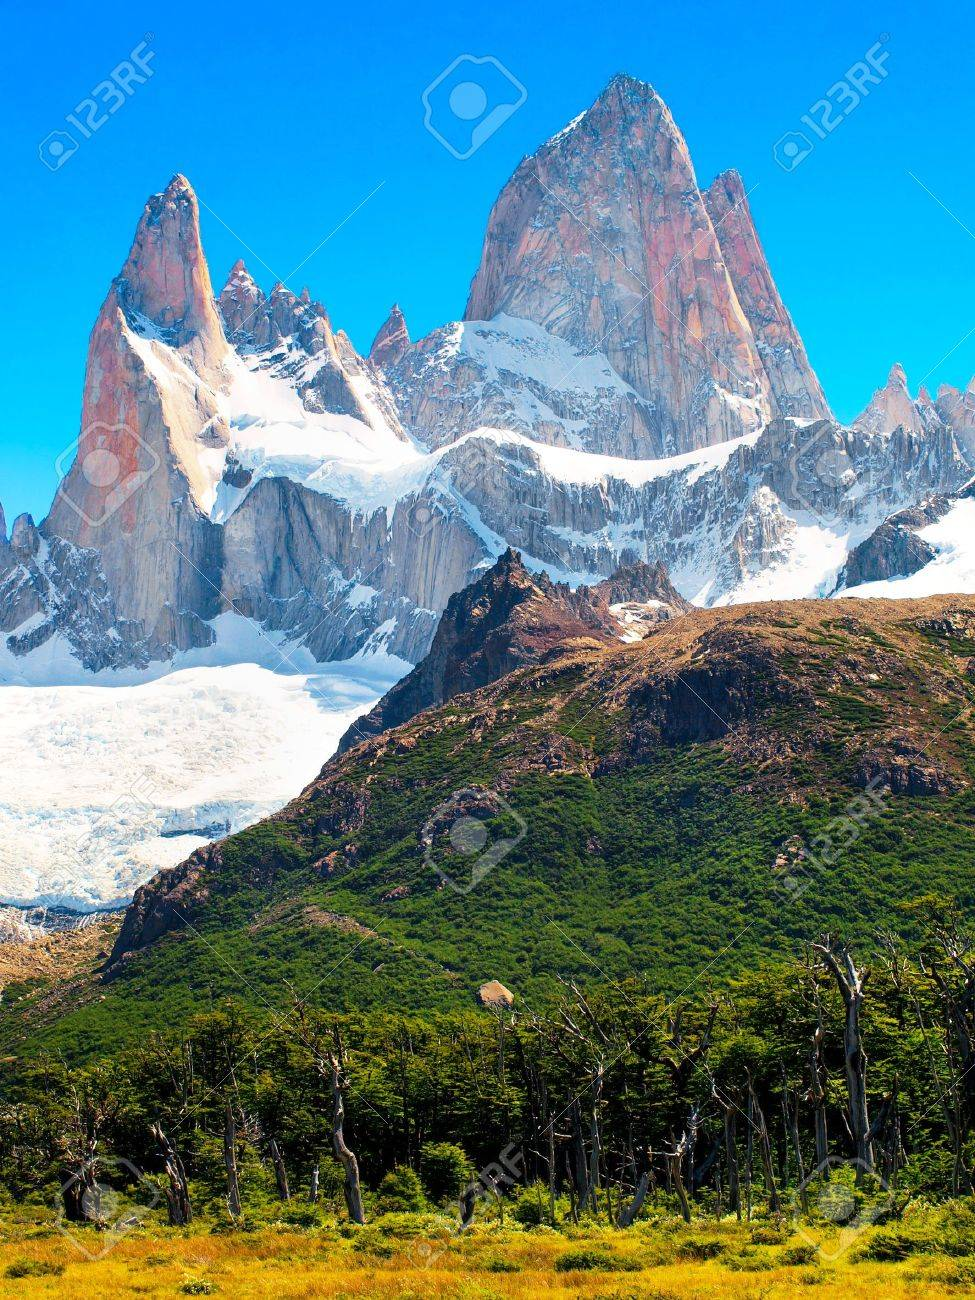 Nature Landscape with Mt. Fitz Roy in Patagonia, Argentina Stock Photo - 11644945